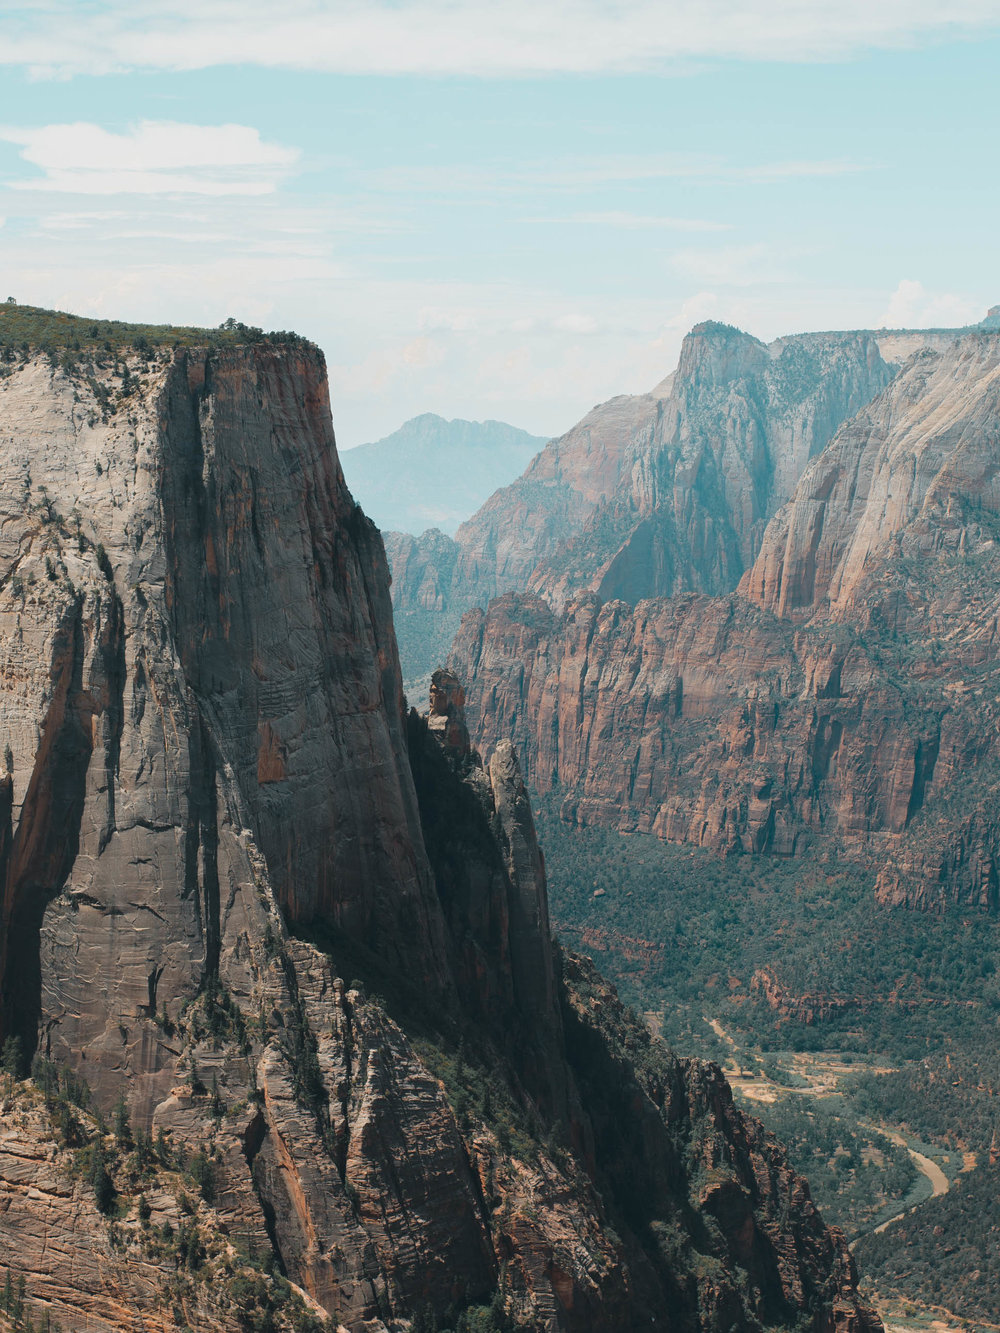 Views from our hike to Observation Point in Zion National Park